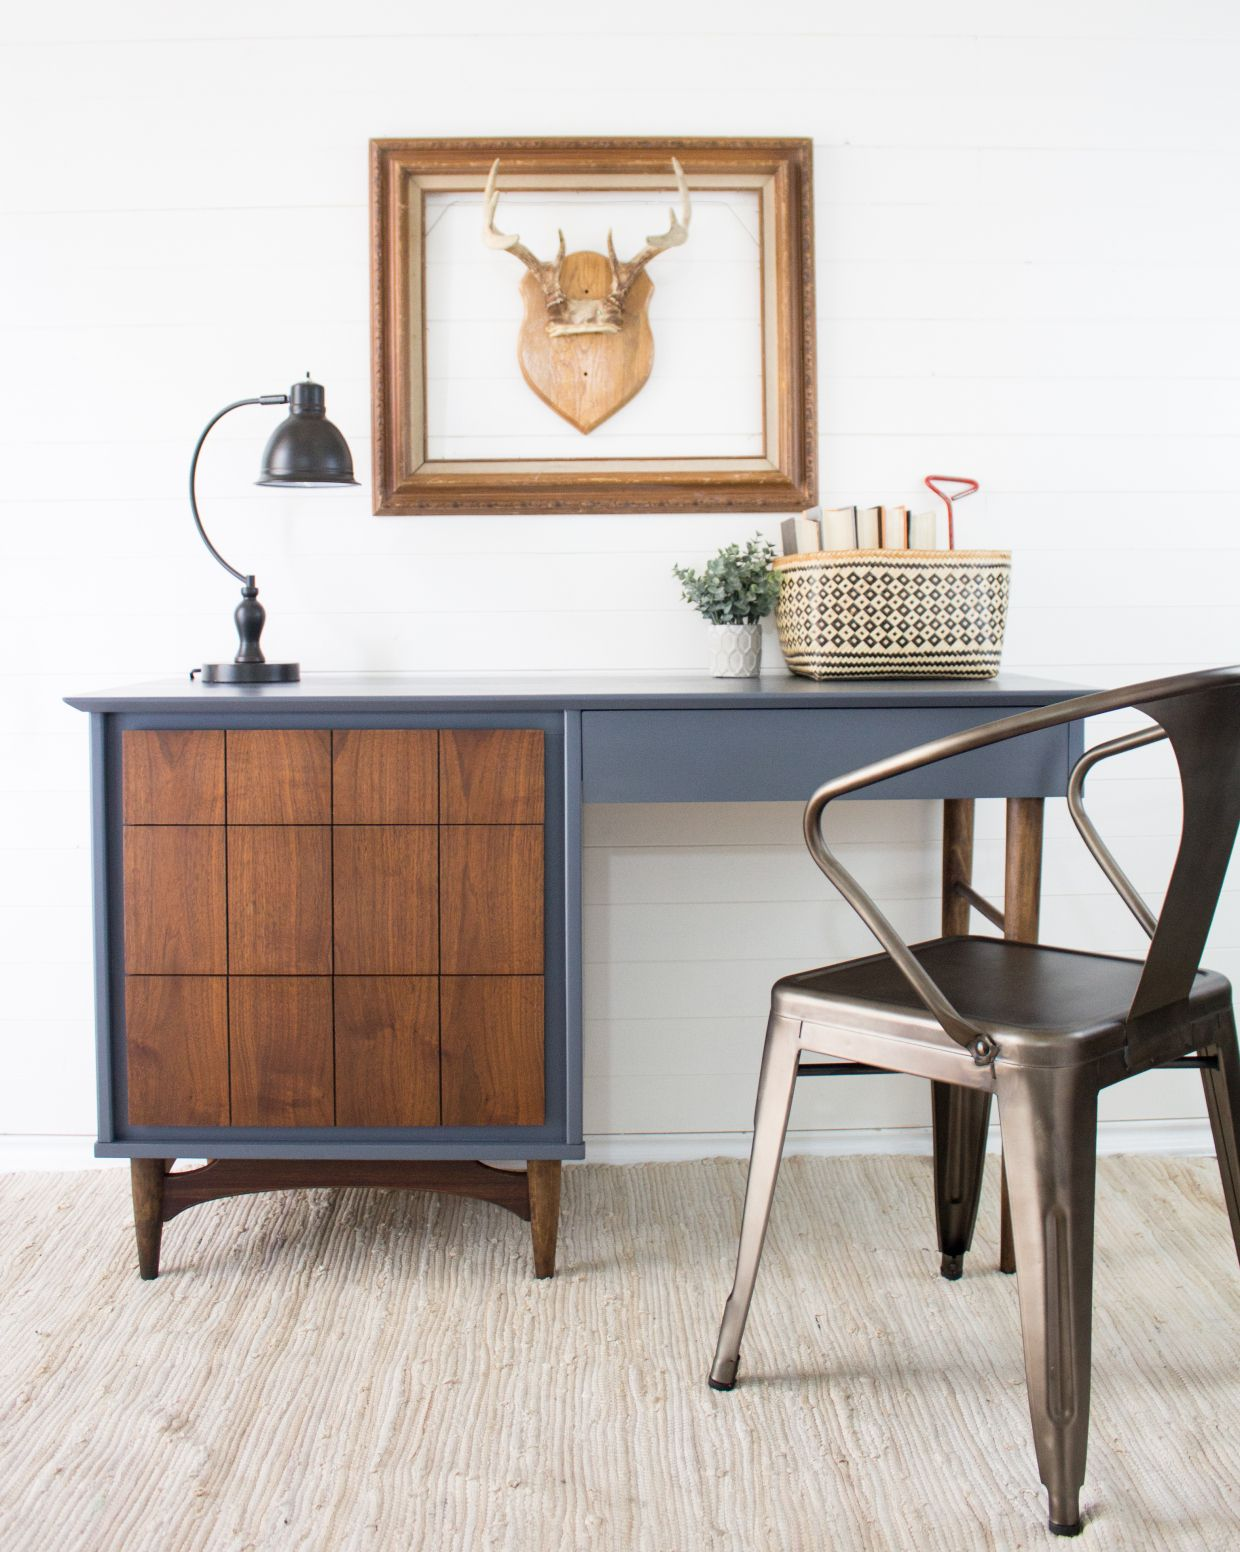 Hurricane Mid Century Modern Desk #Diy #Desk #Grey #Hurricane #Homedecor